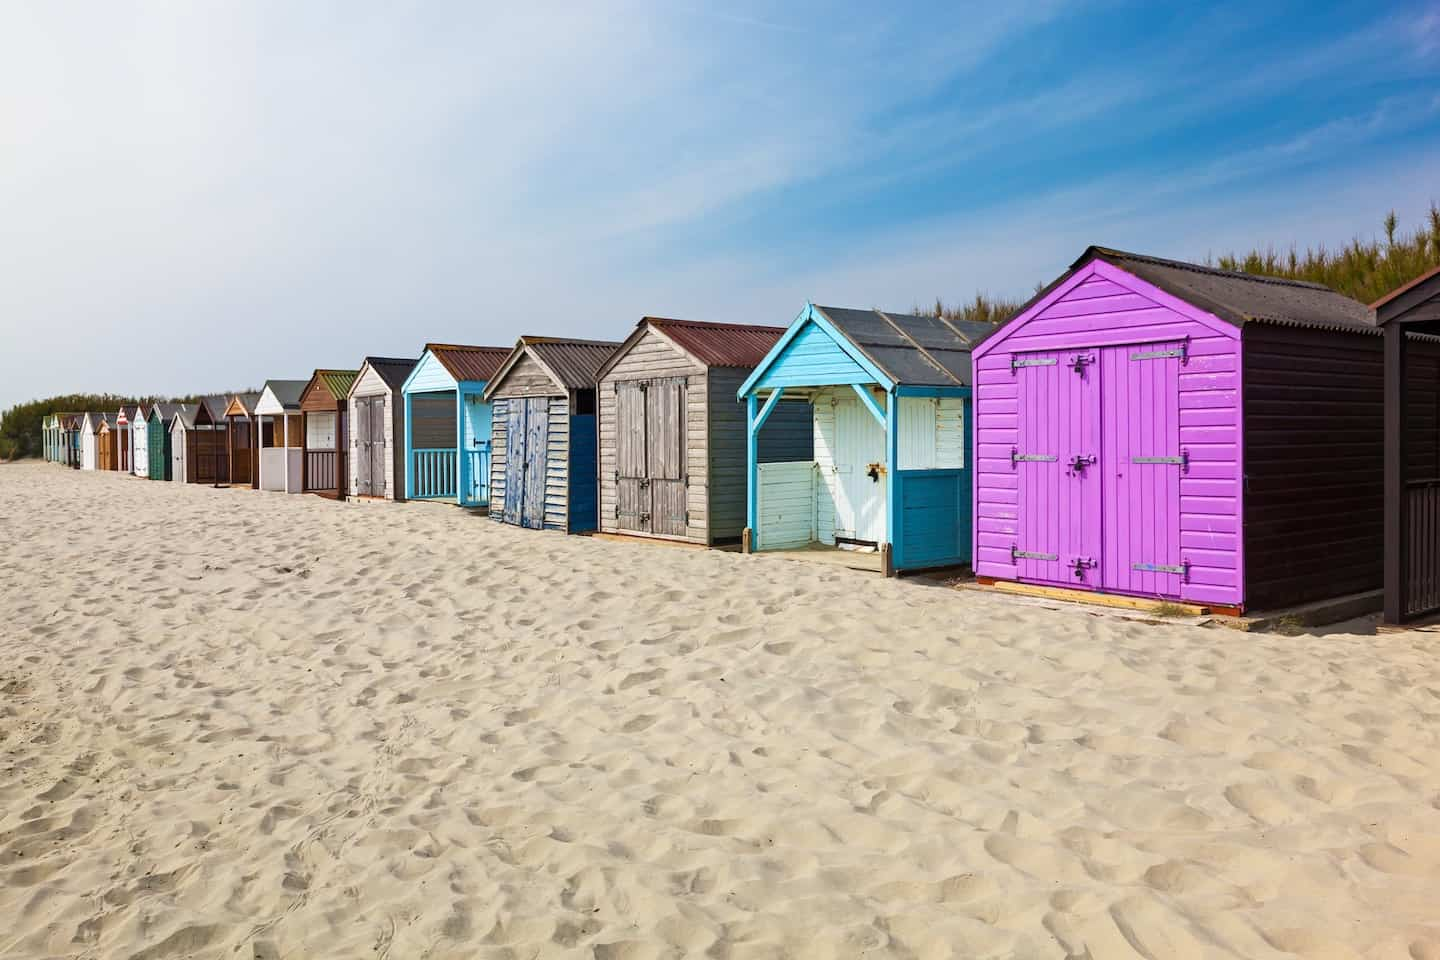 The Best Dog-Friendly Beaches in West Sussex - West Wittering Beach Huts